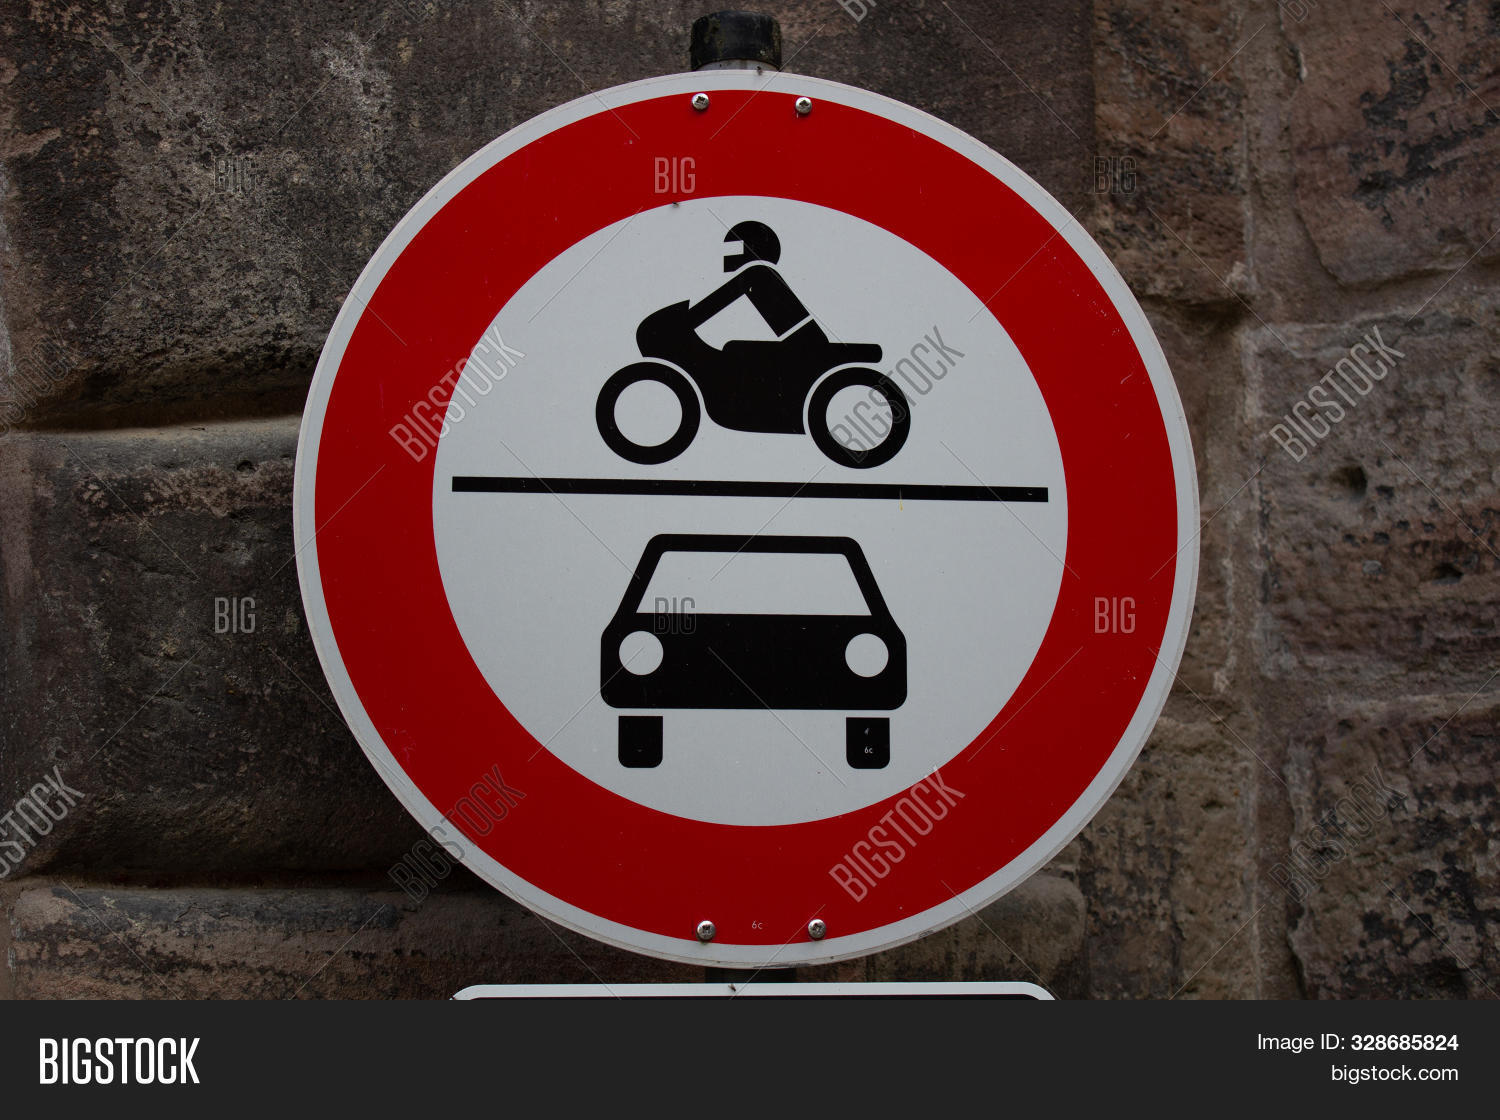 Old Fashioned Traffic Sign No Motor Vehicles Cars And Motorbikes, In Germany